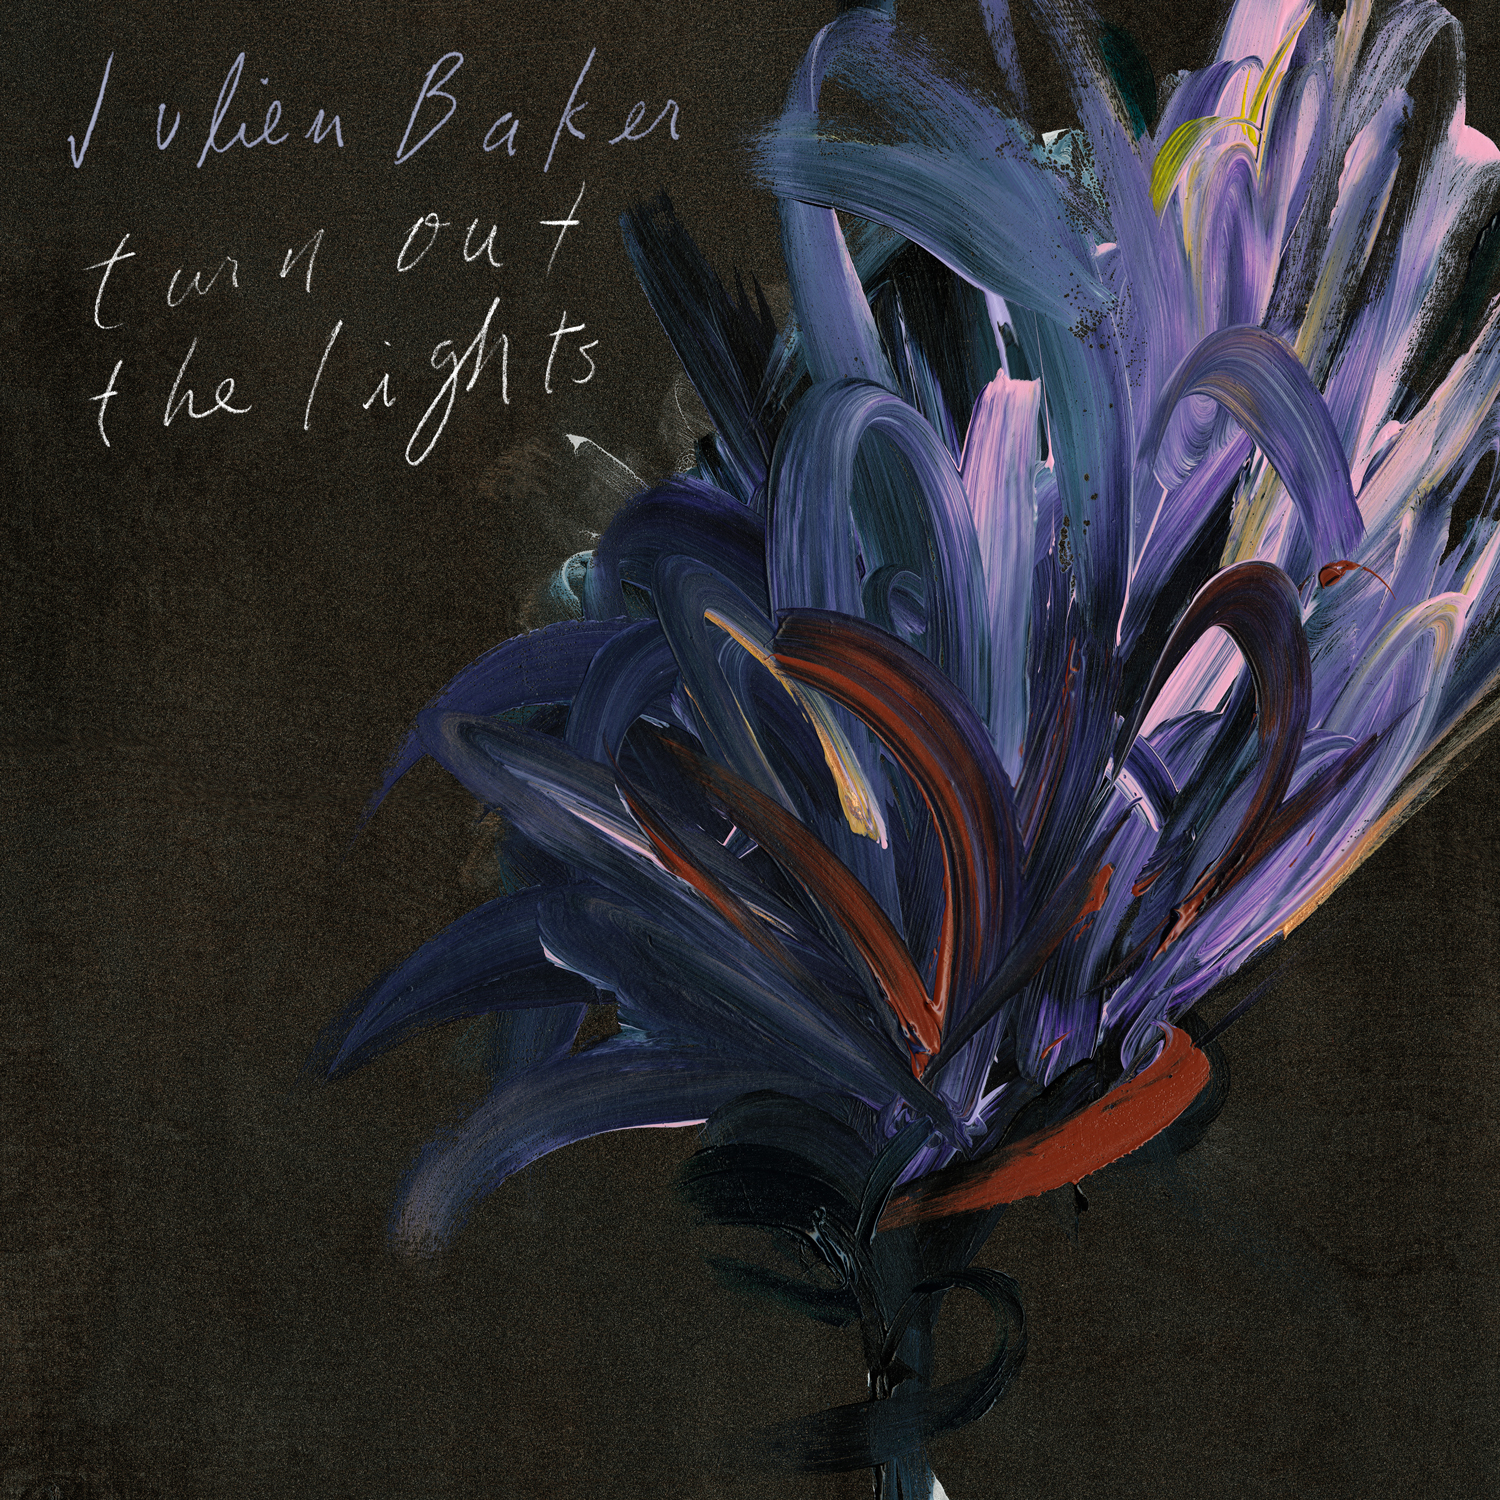 julien baker e28093 turn out the lights Top 50 Albums of 2017